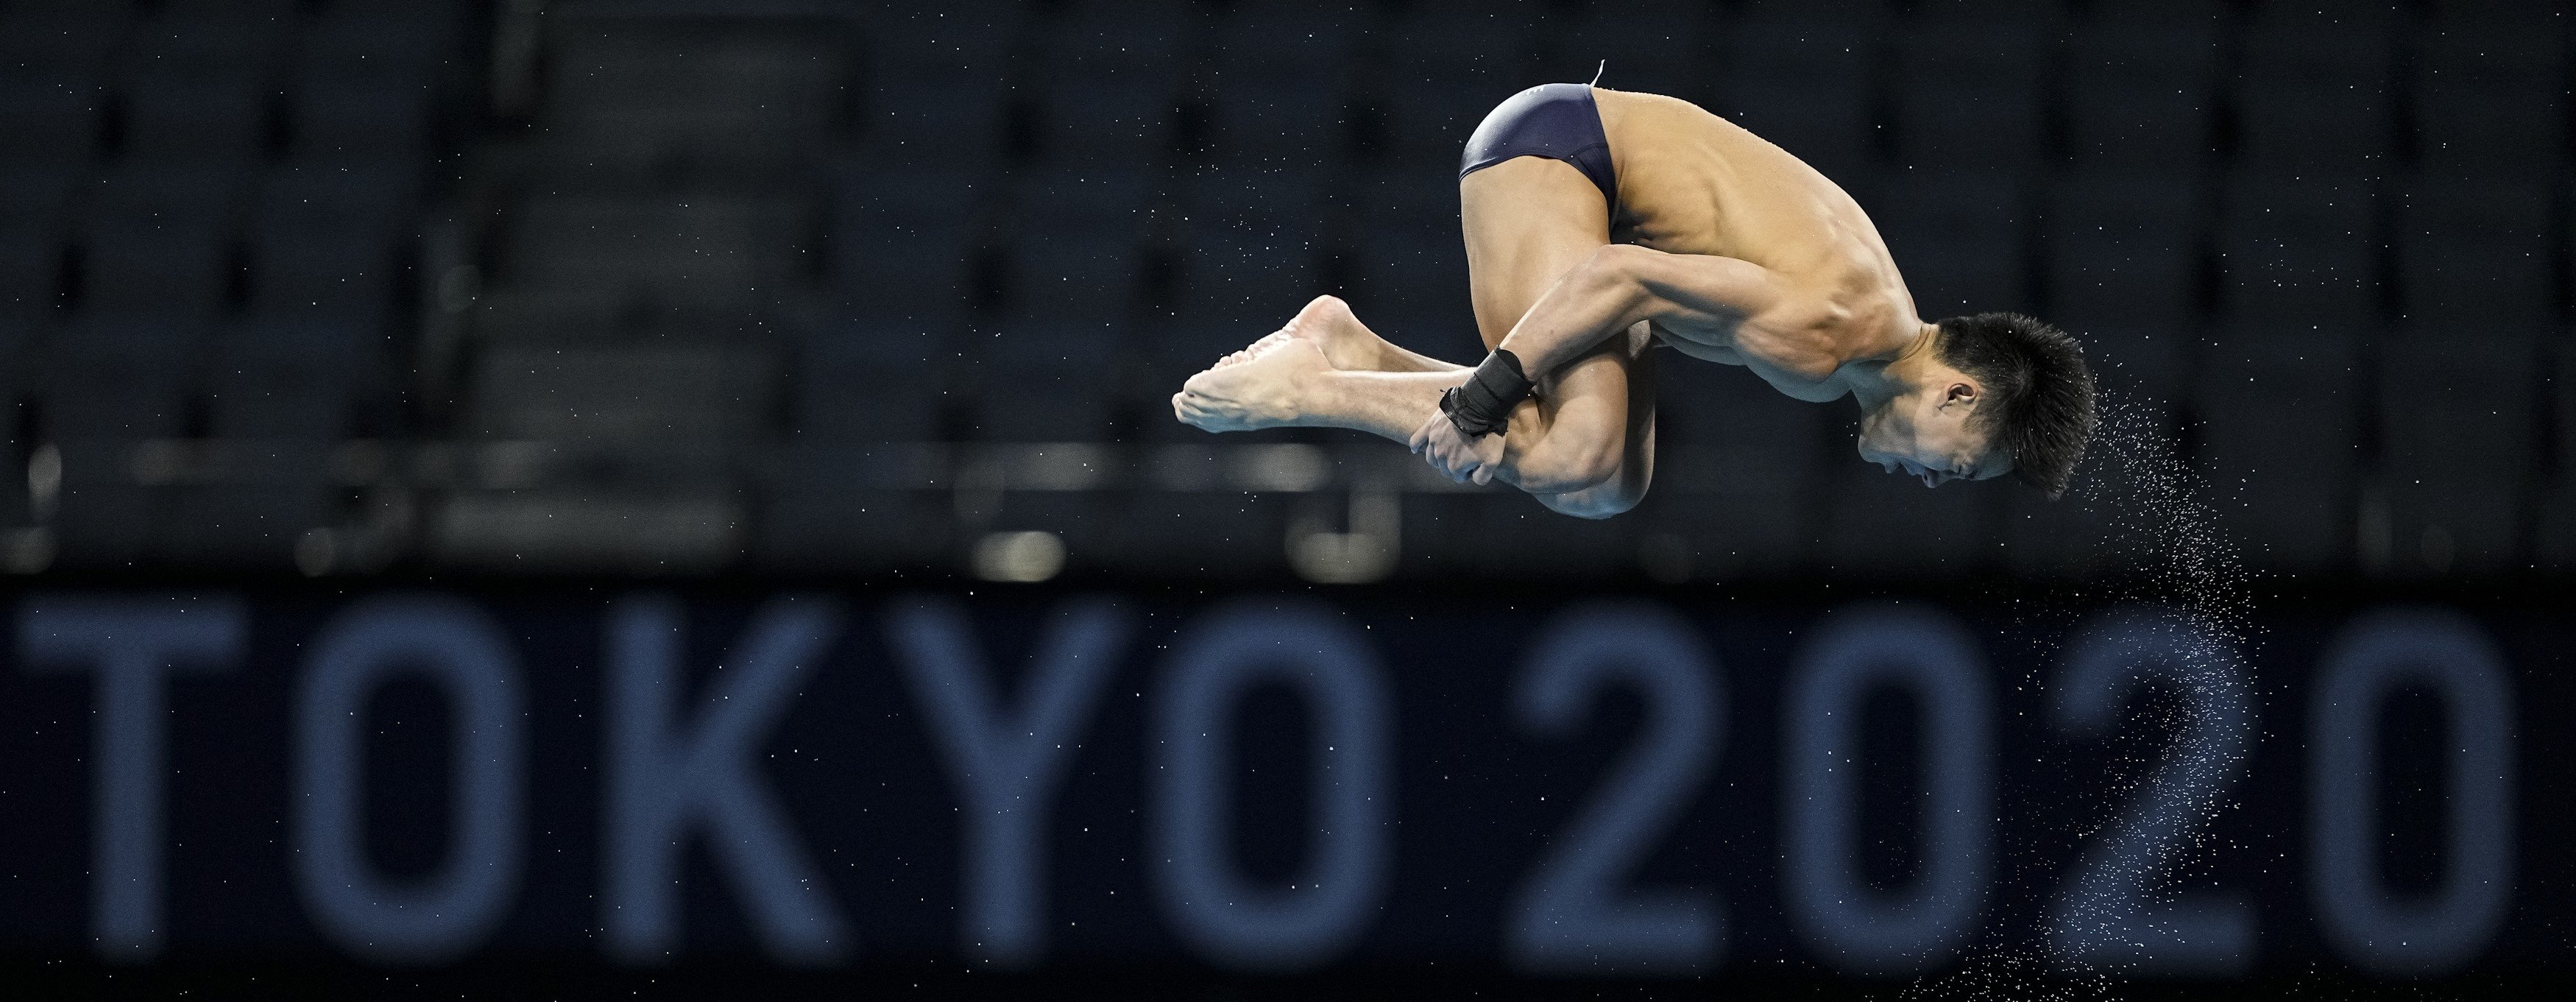 Tokyo 2020 - Jonathan Chan becomes Singapore's first-ever male Olympic diver after creditable showing!